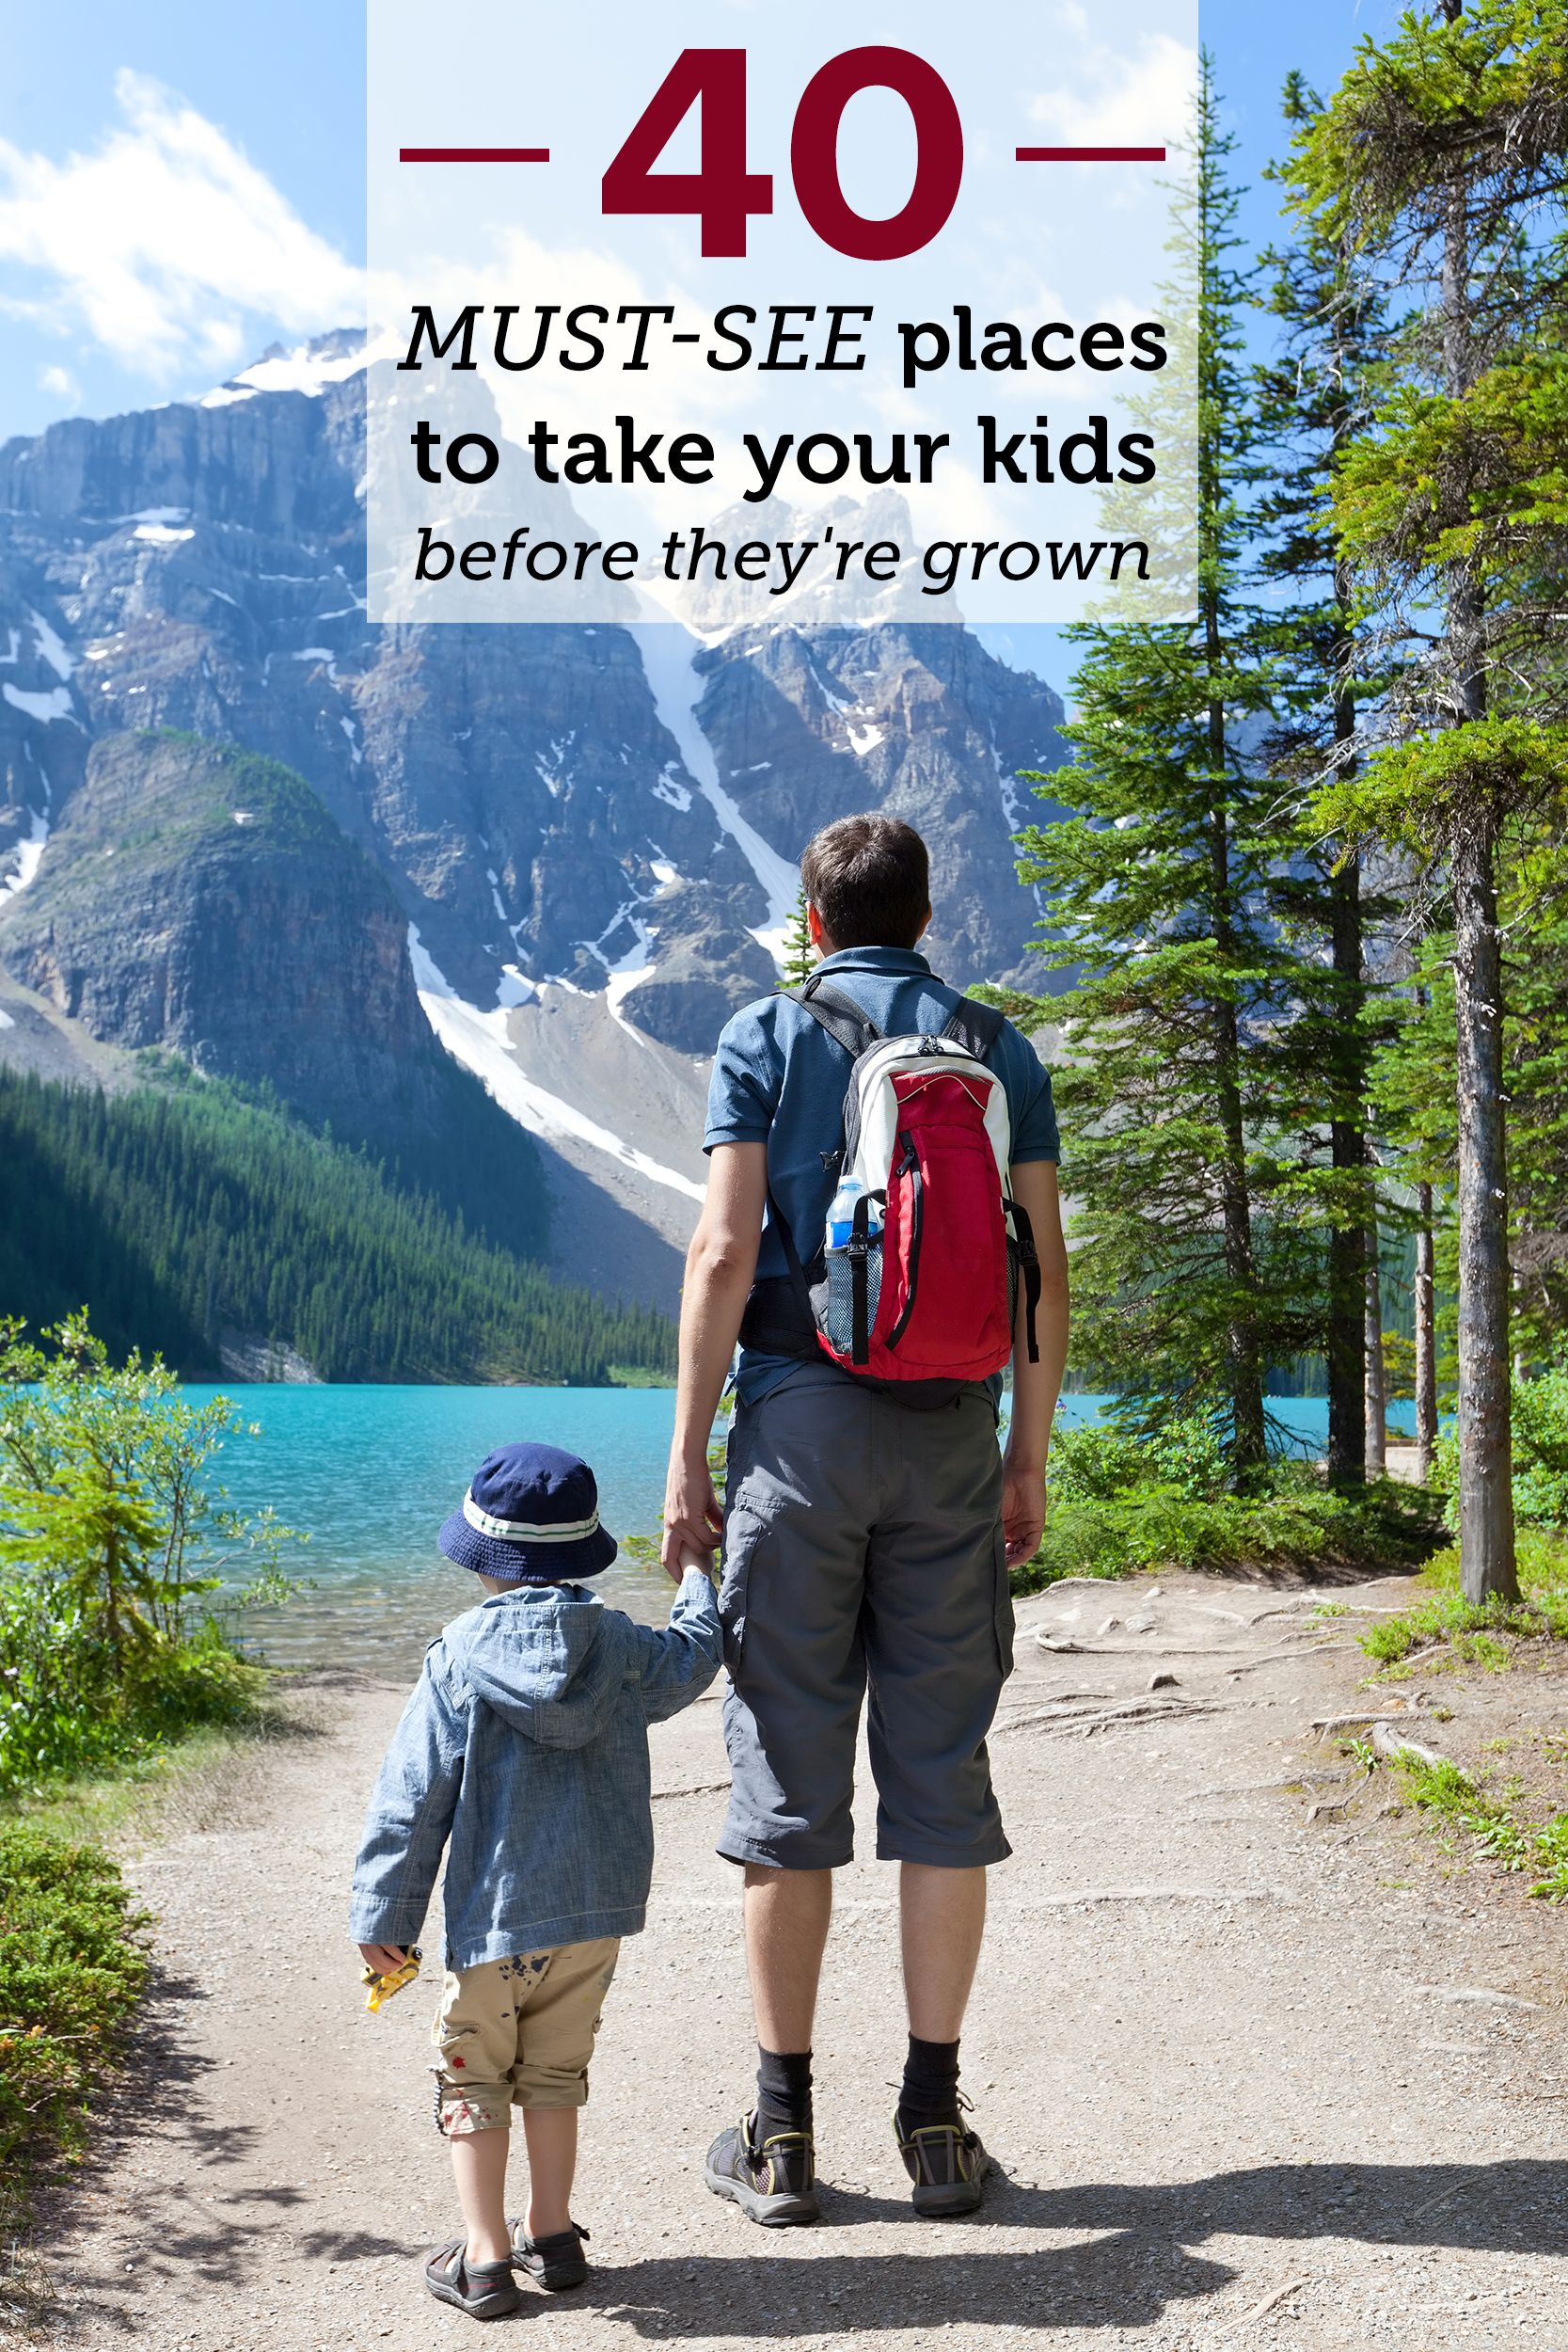 40 mustsee places to take your kids before theyre grown